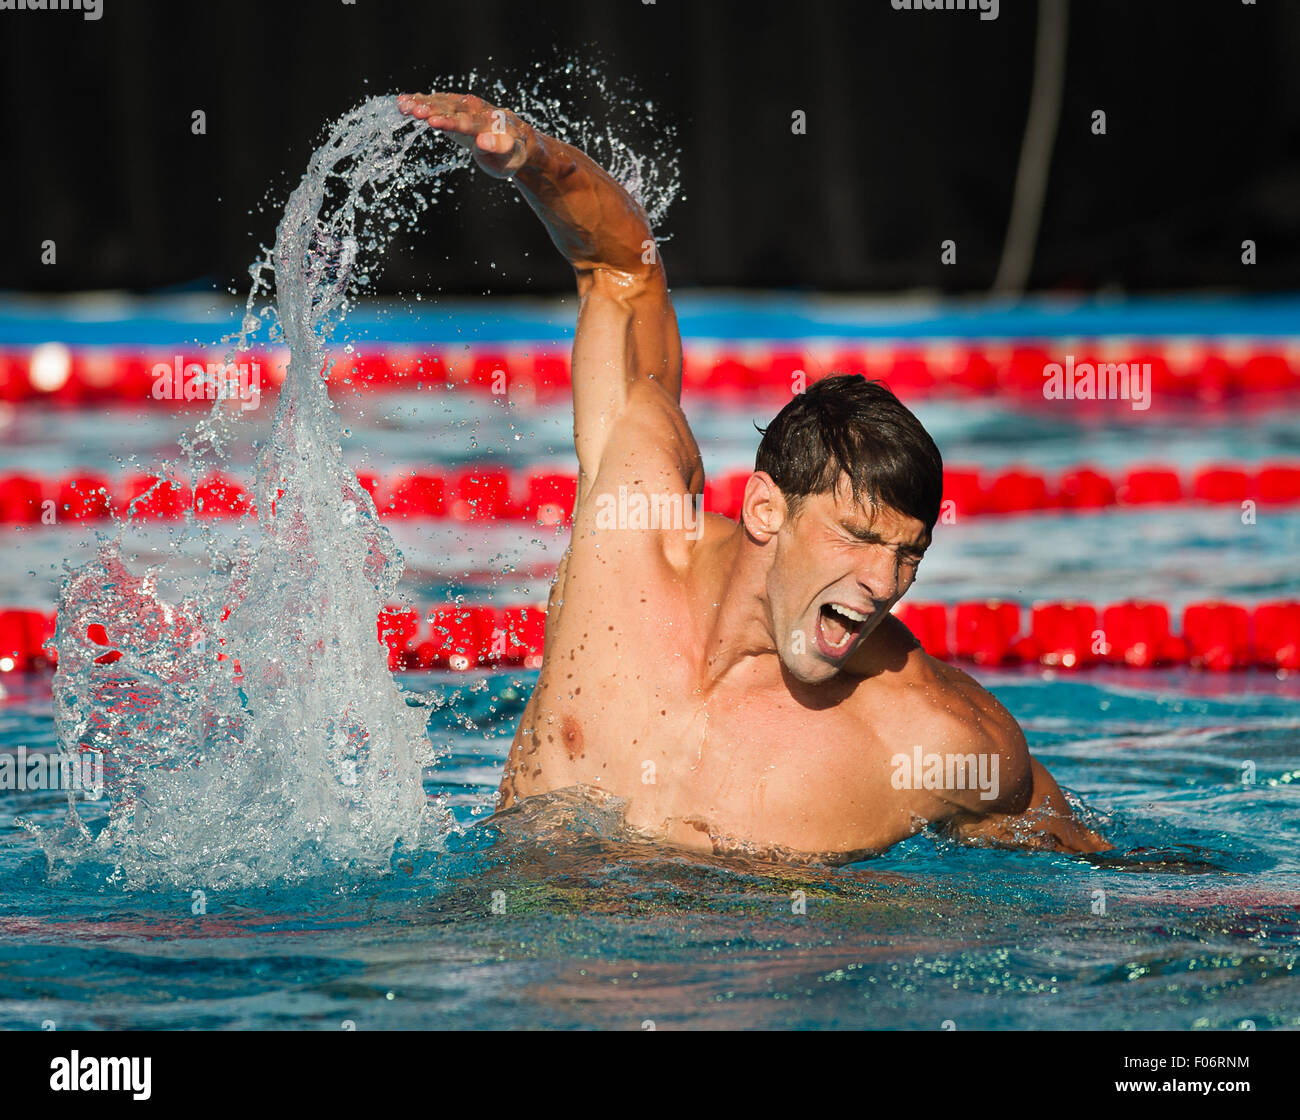 San Antonio, Texas, USA. 8th Aug, 2015. MICHAEL PHELPS reacts after winning the Final of the 100m Butterfly during - Stock Image